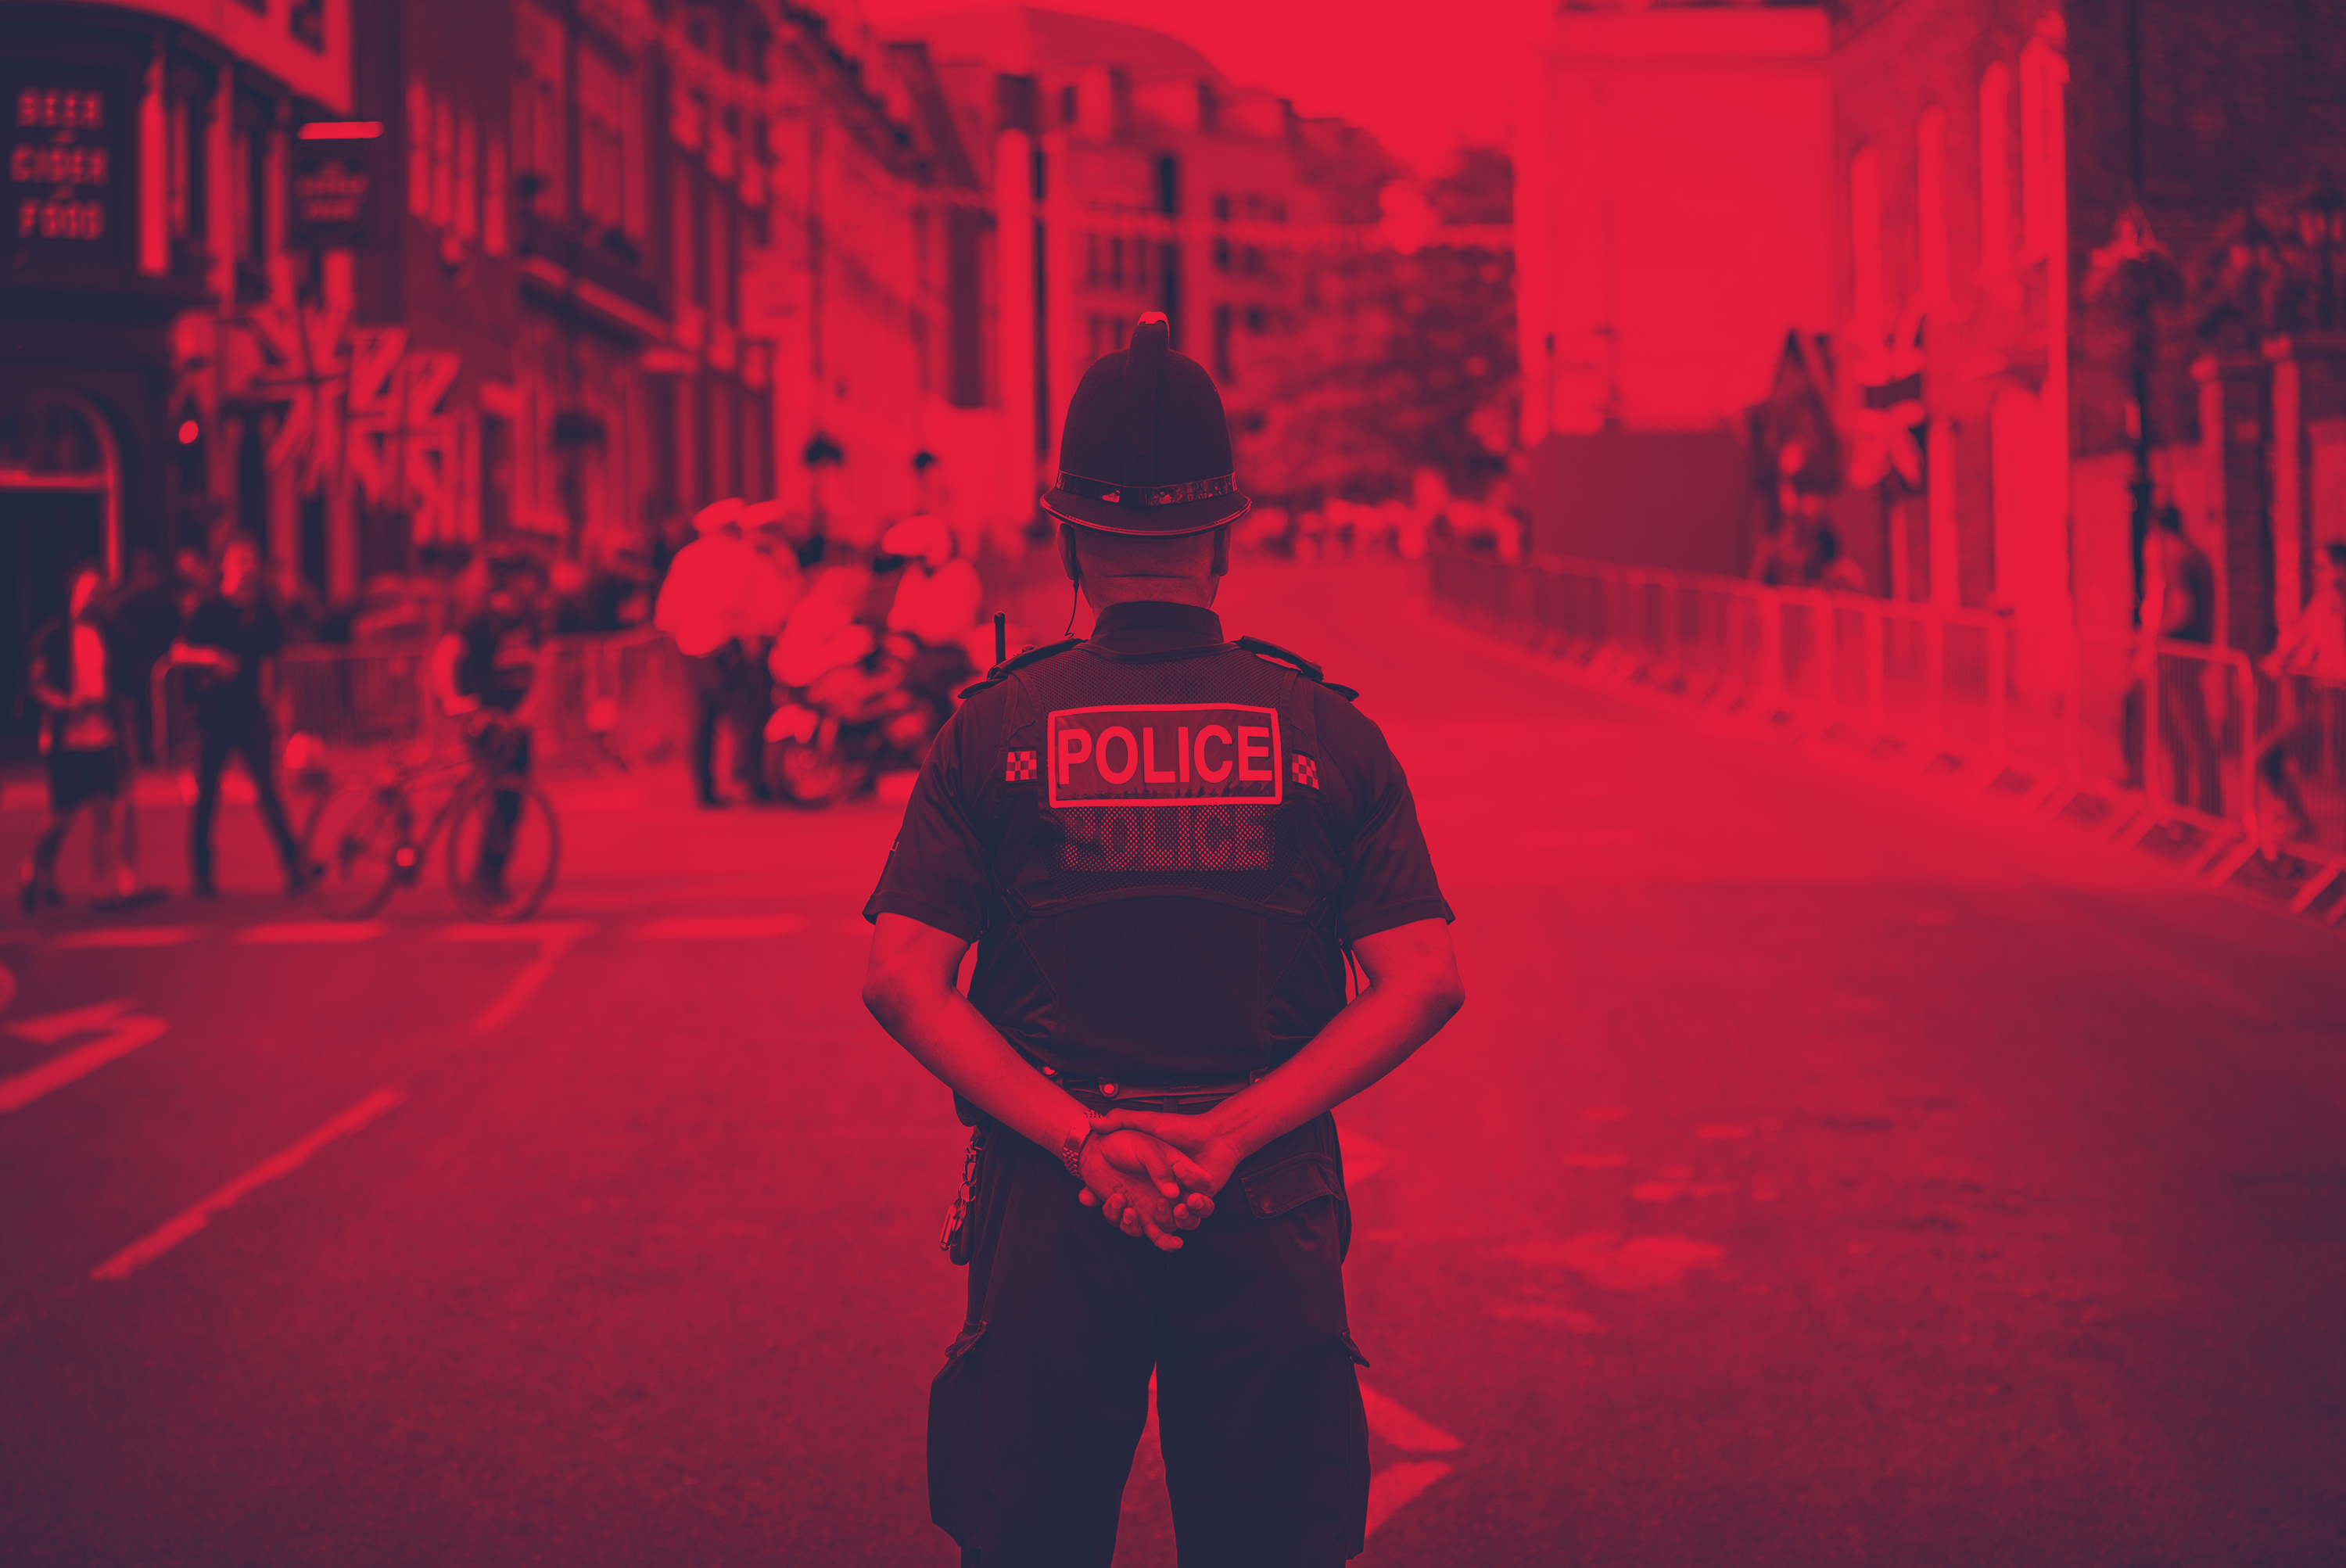 Red Snapper Learning Supporting UK Police Forces Improve Disclosure Practices Via Training Initiatives